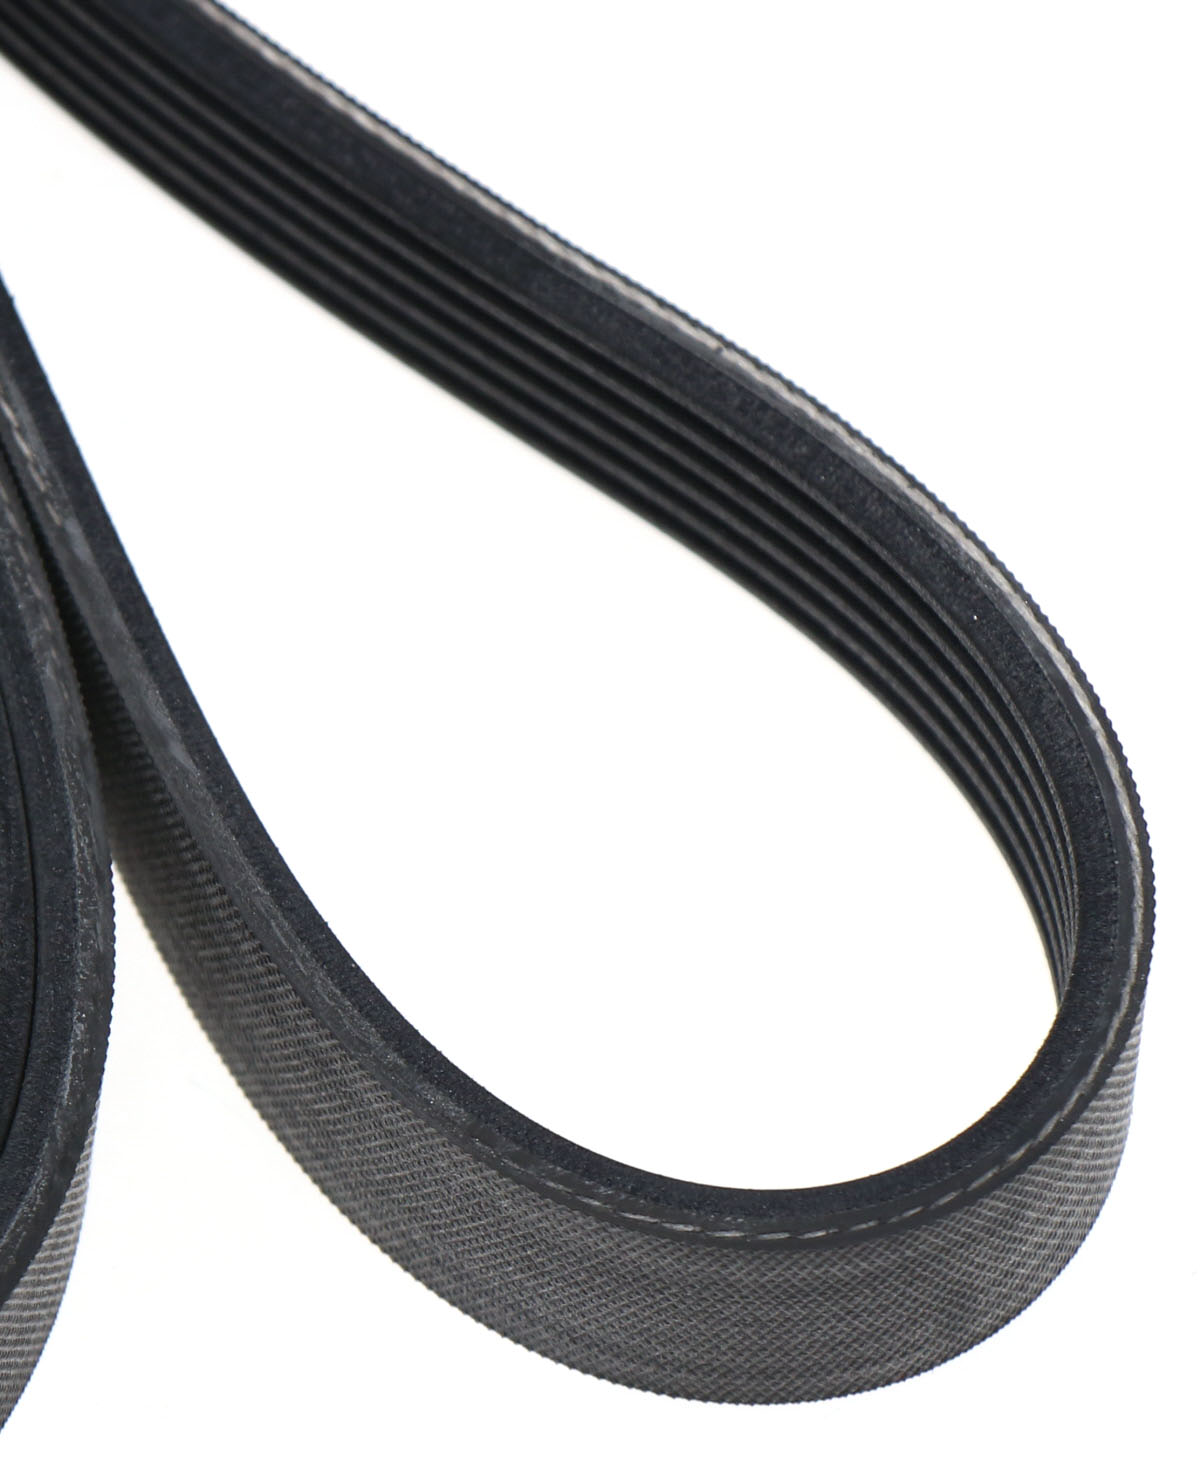 AC DELCO 6K984 Replacement Belt